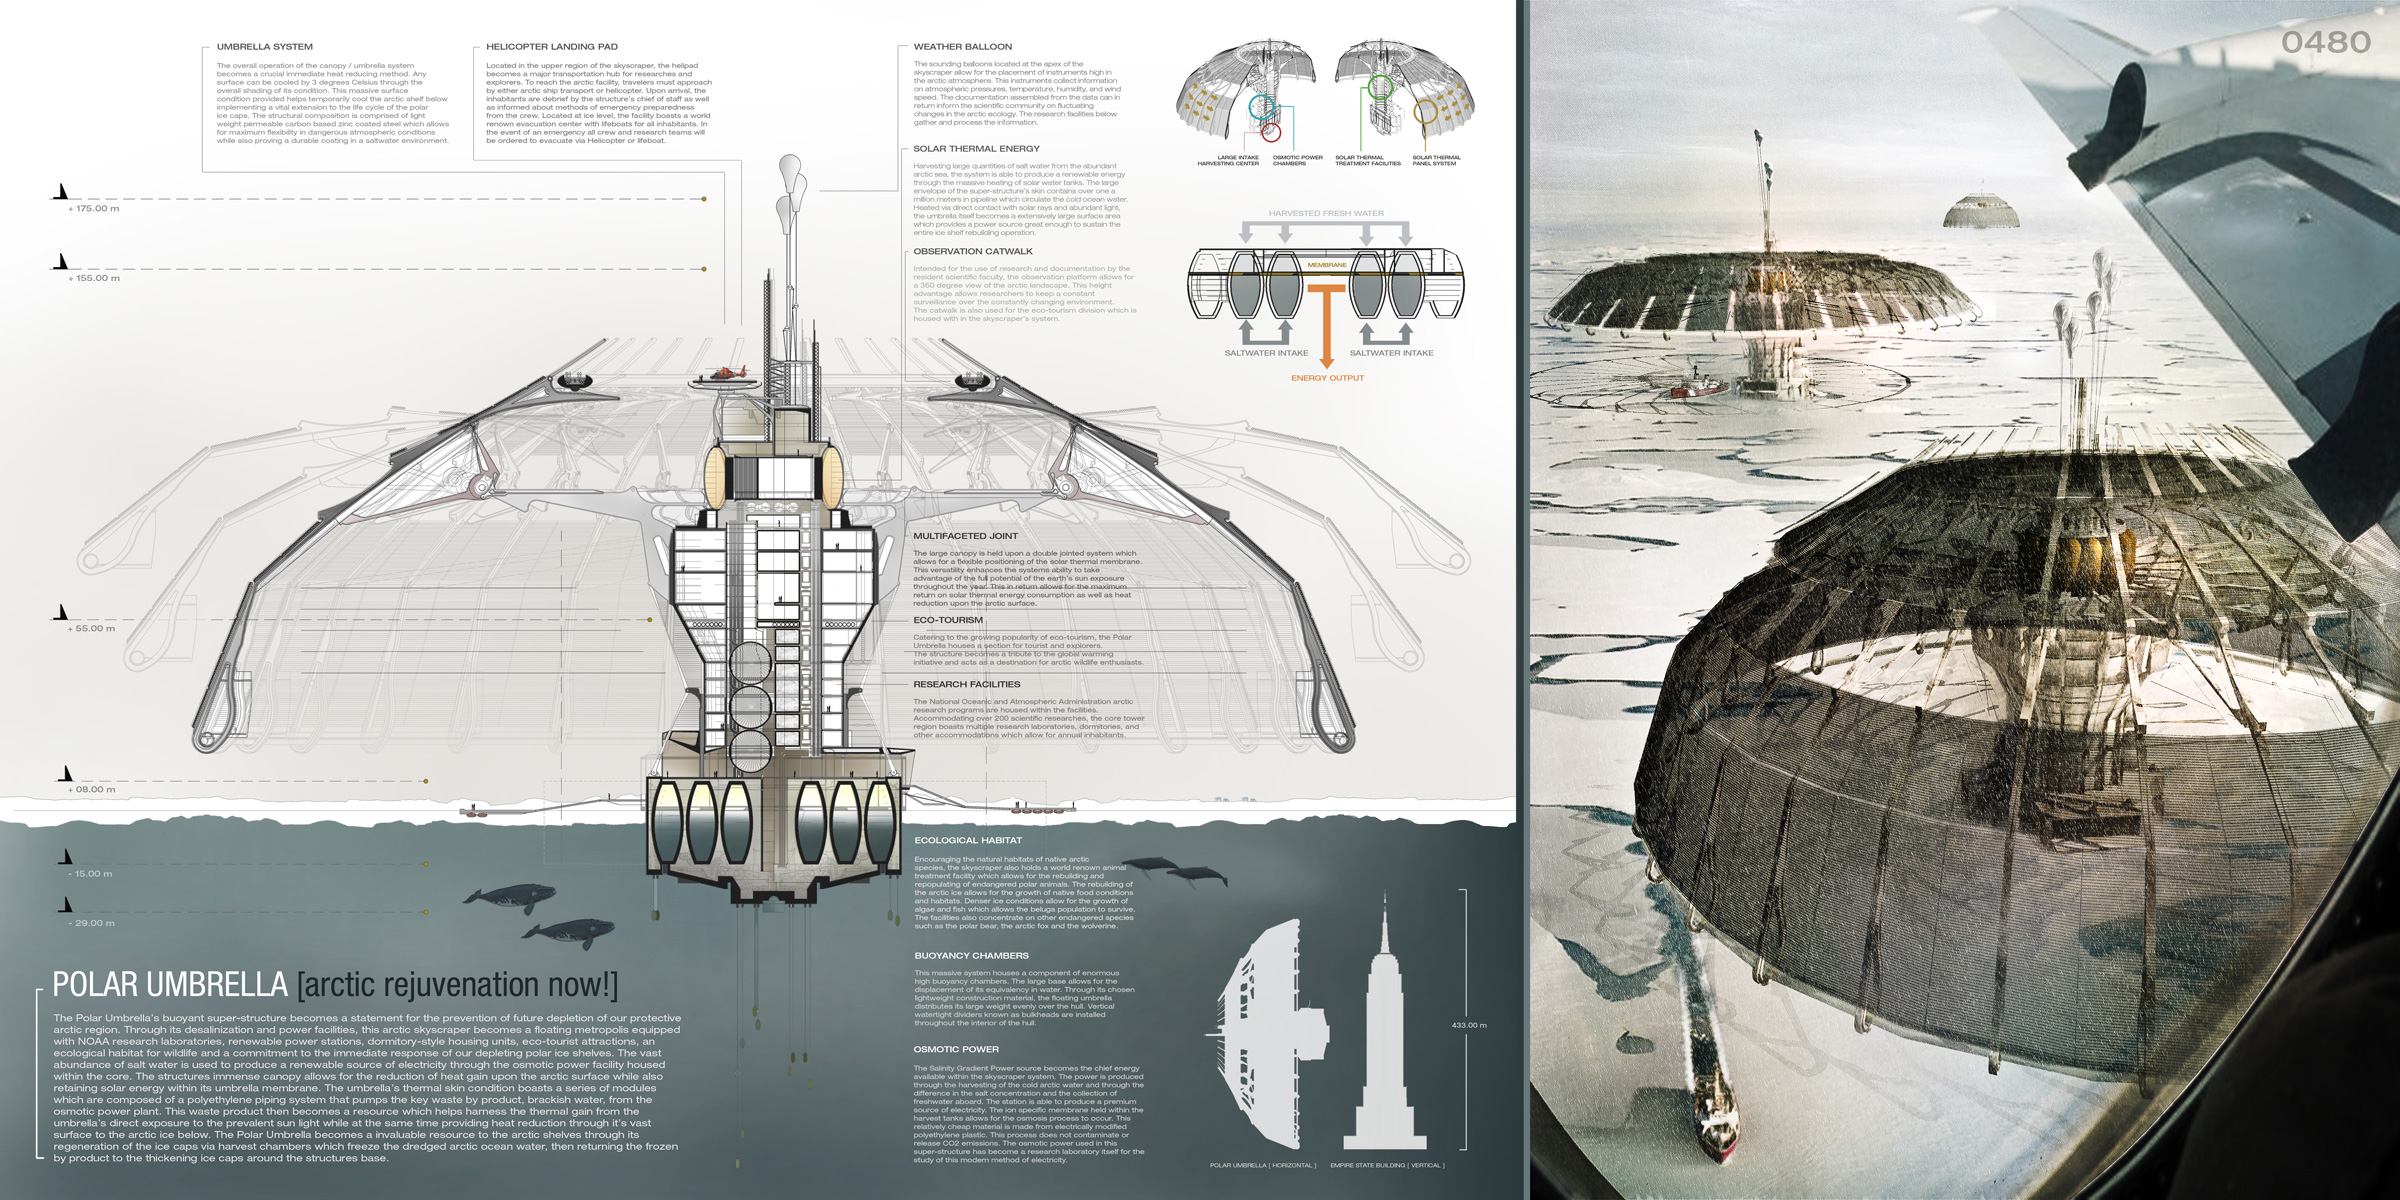 polar umbrella buoyant skyscraper protects and regenerates